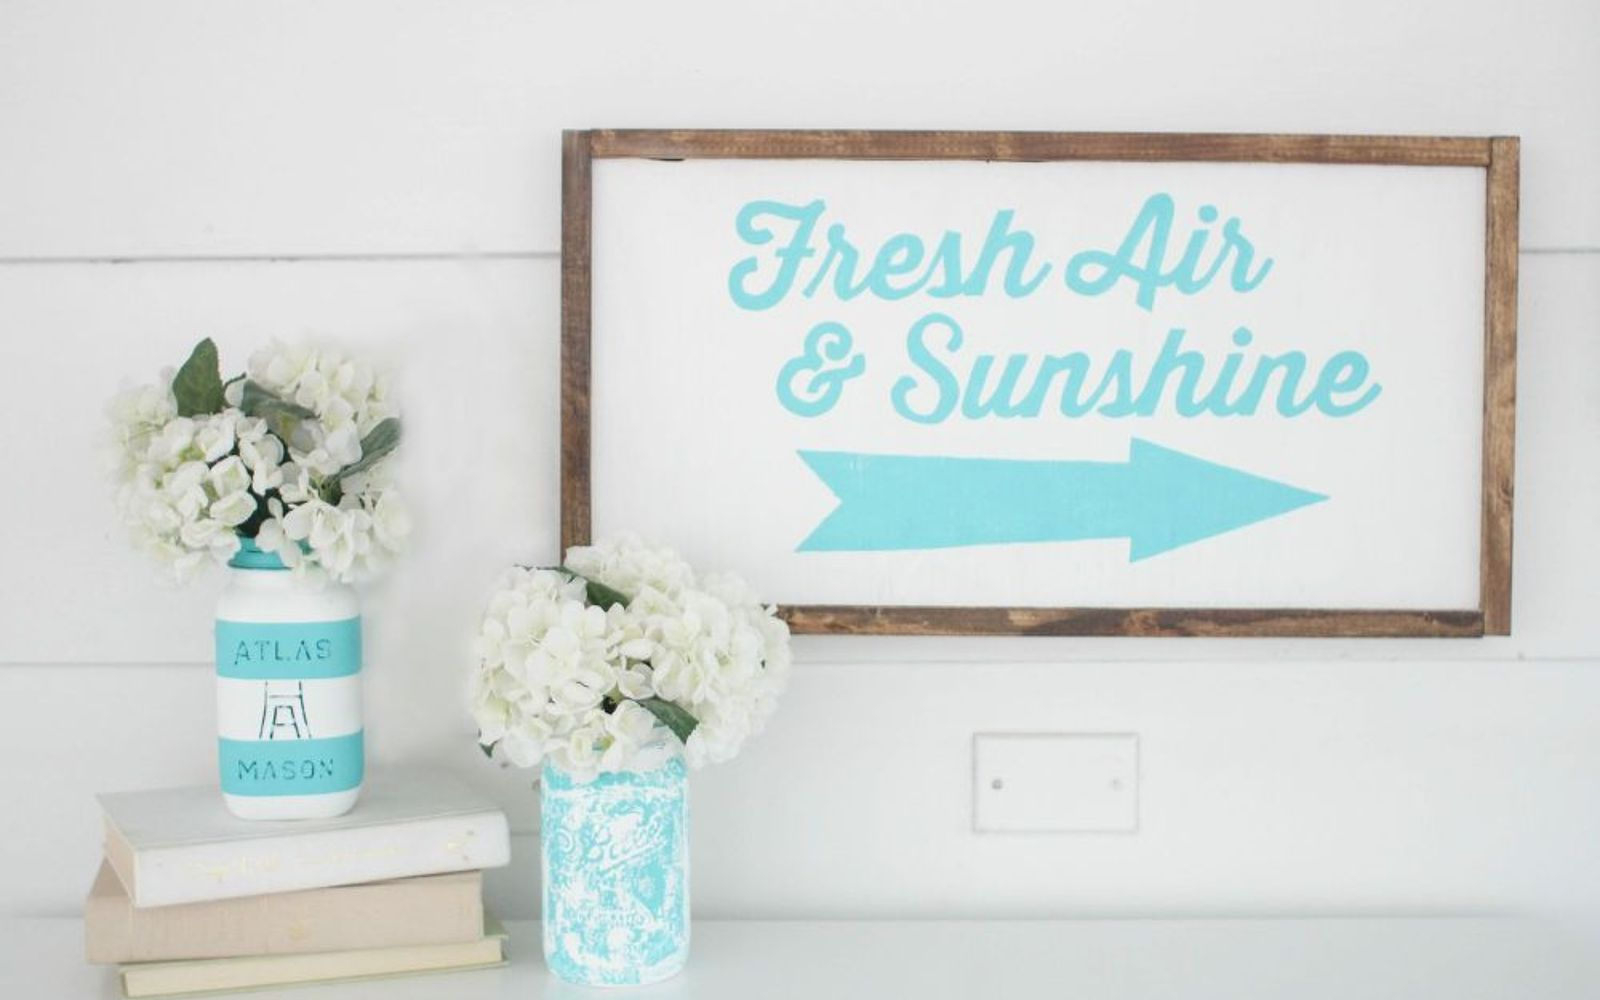 s these are the hottest diy spring trends of 2016, crafts, seasonal holiday decor, Make sweet signage instead of art